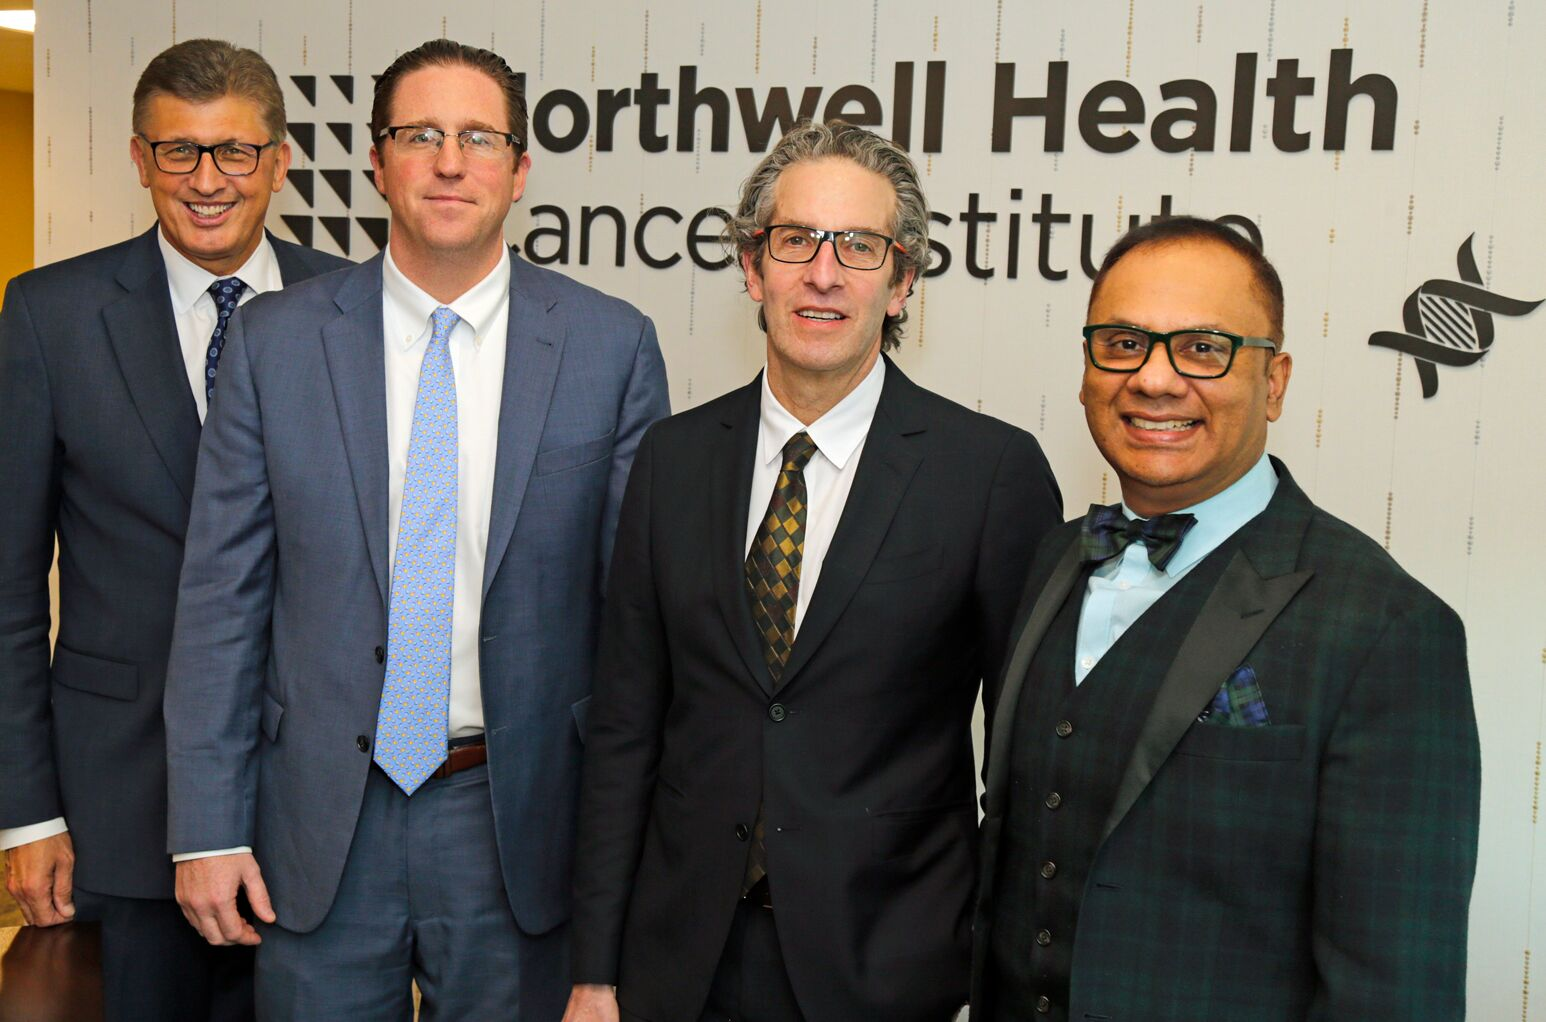 Drs. Richard Barakat, Matthew Weiss, Louis Potters and Wasif Saif